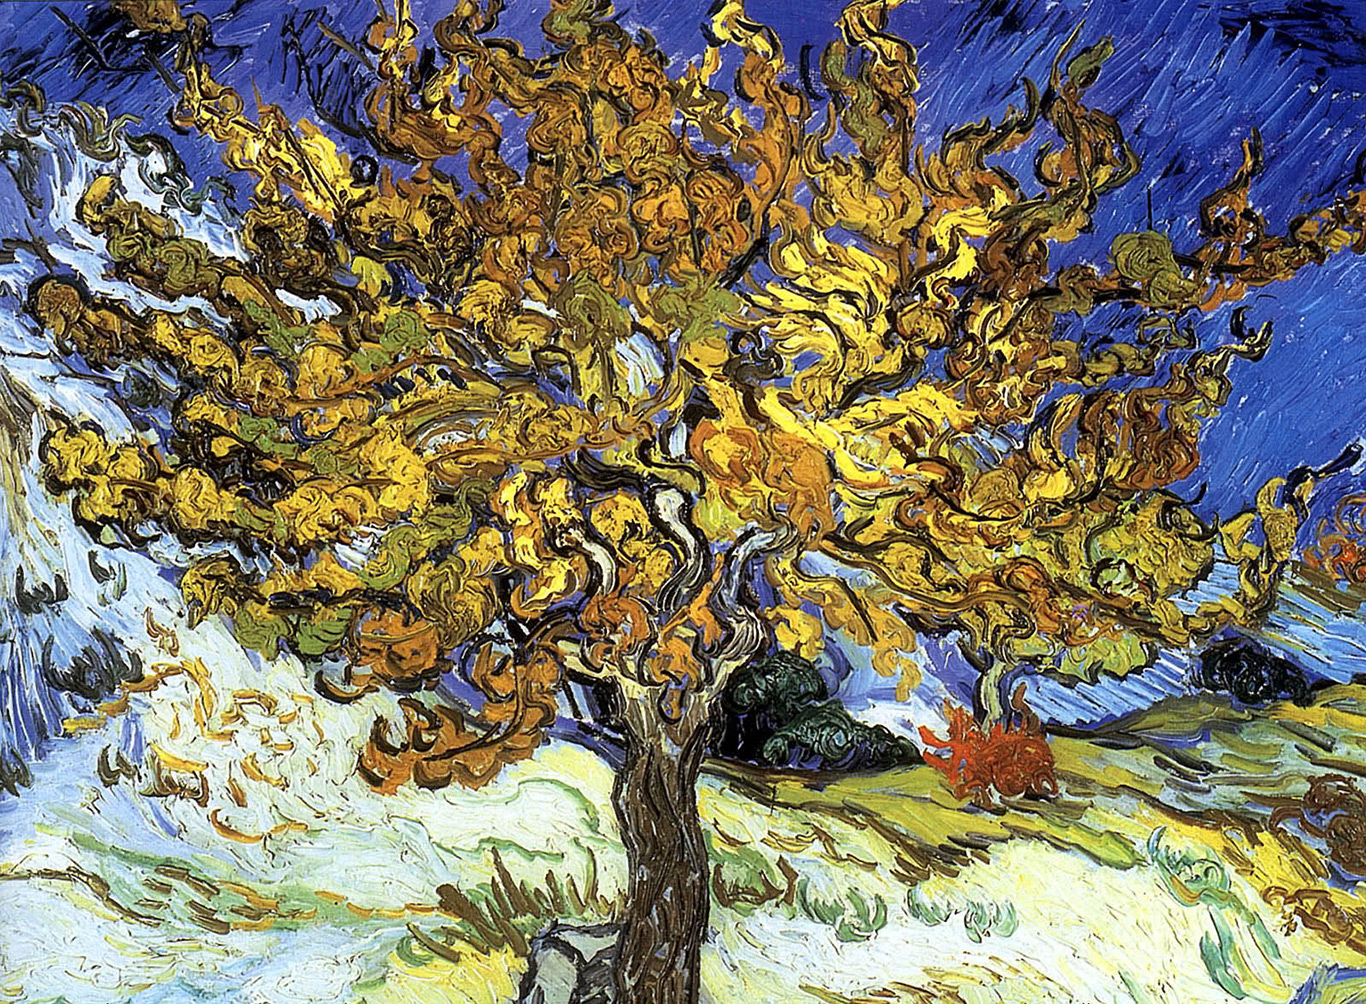 van gogh mulberry tree